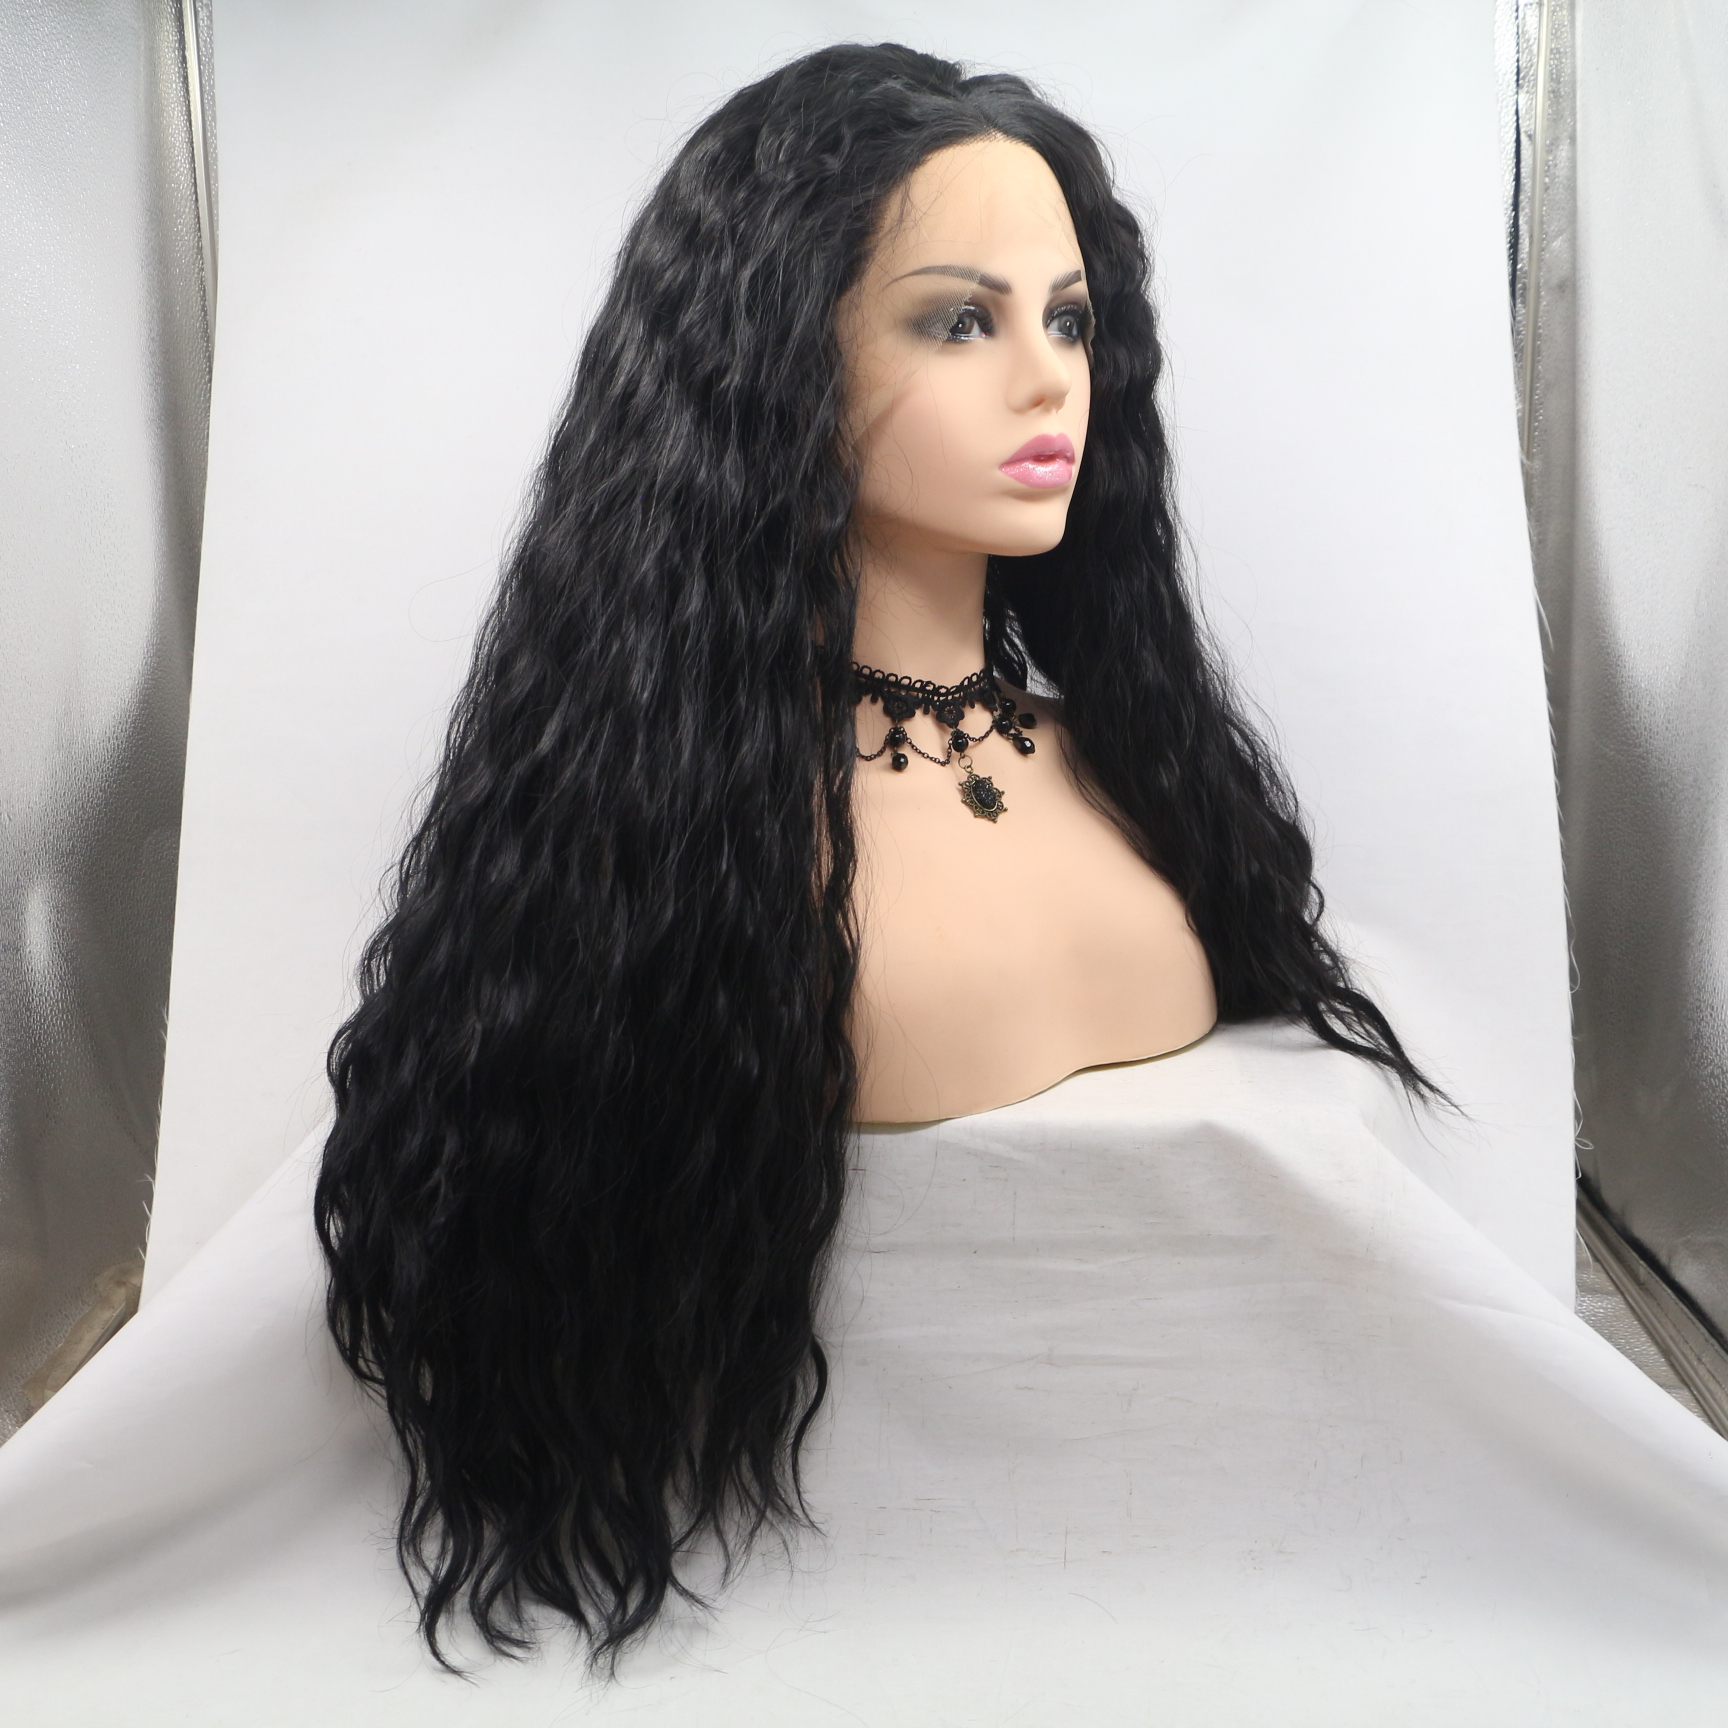 28 inch long length Women wig Slight Wave Heavy density WK228